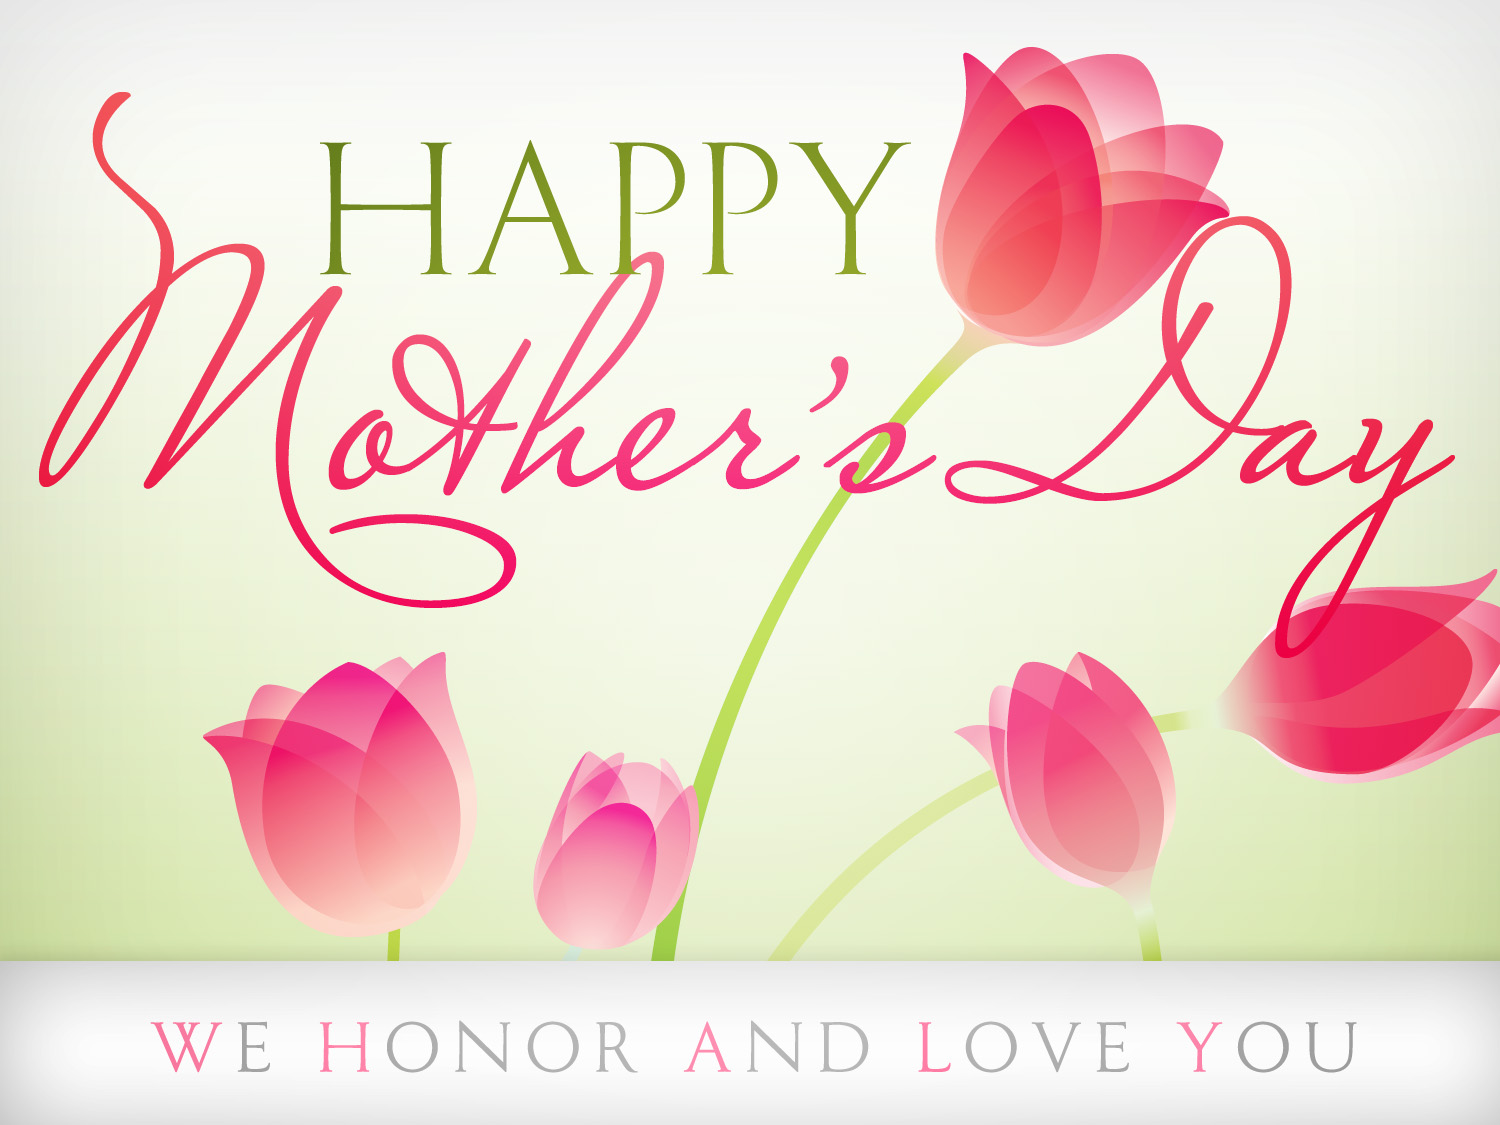 Mothers Day Time To Look After Your Own Health From Now Onward